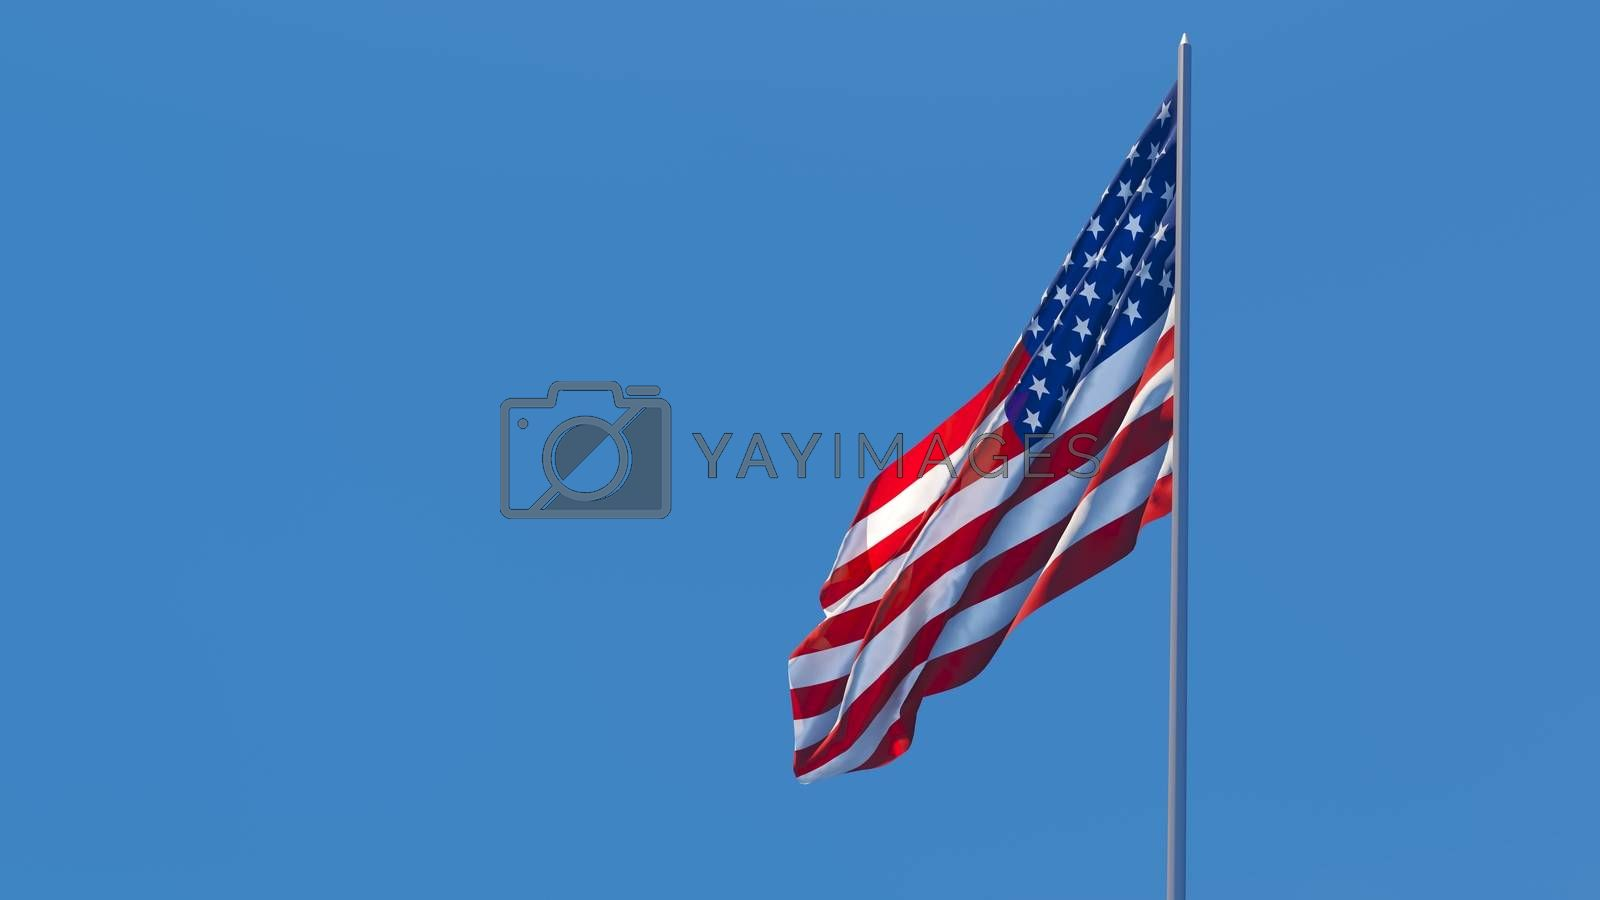 3d rendering of the national flag of the United States of America.